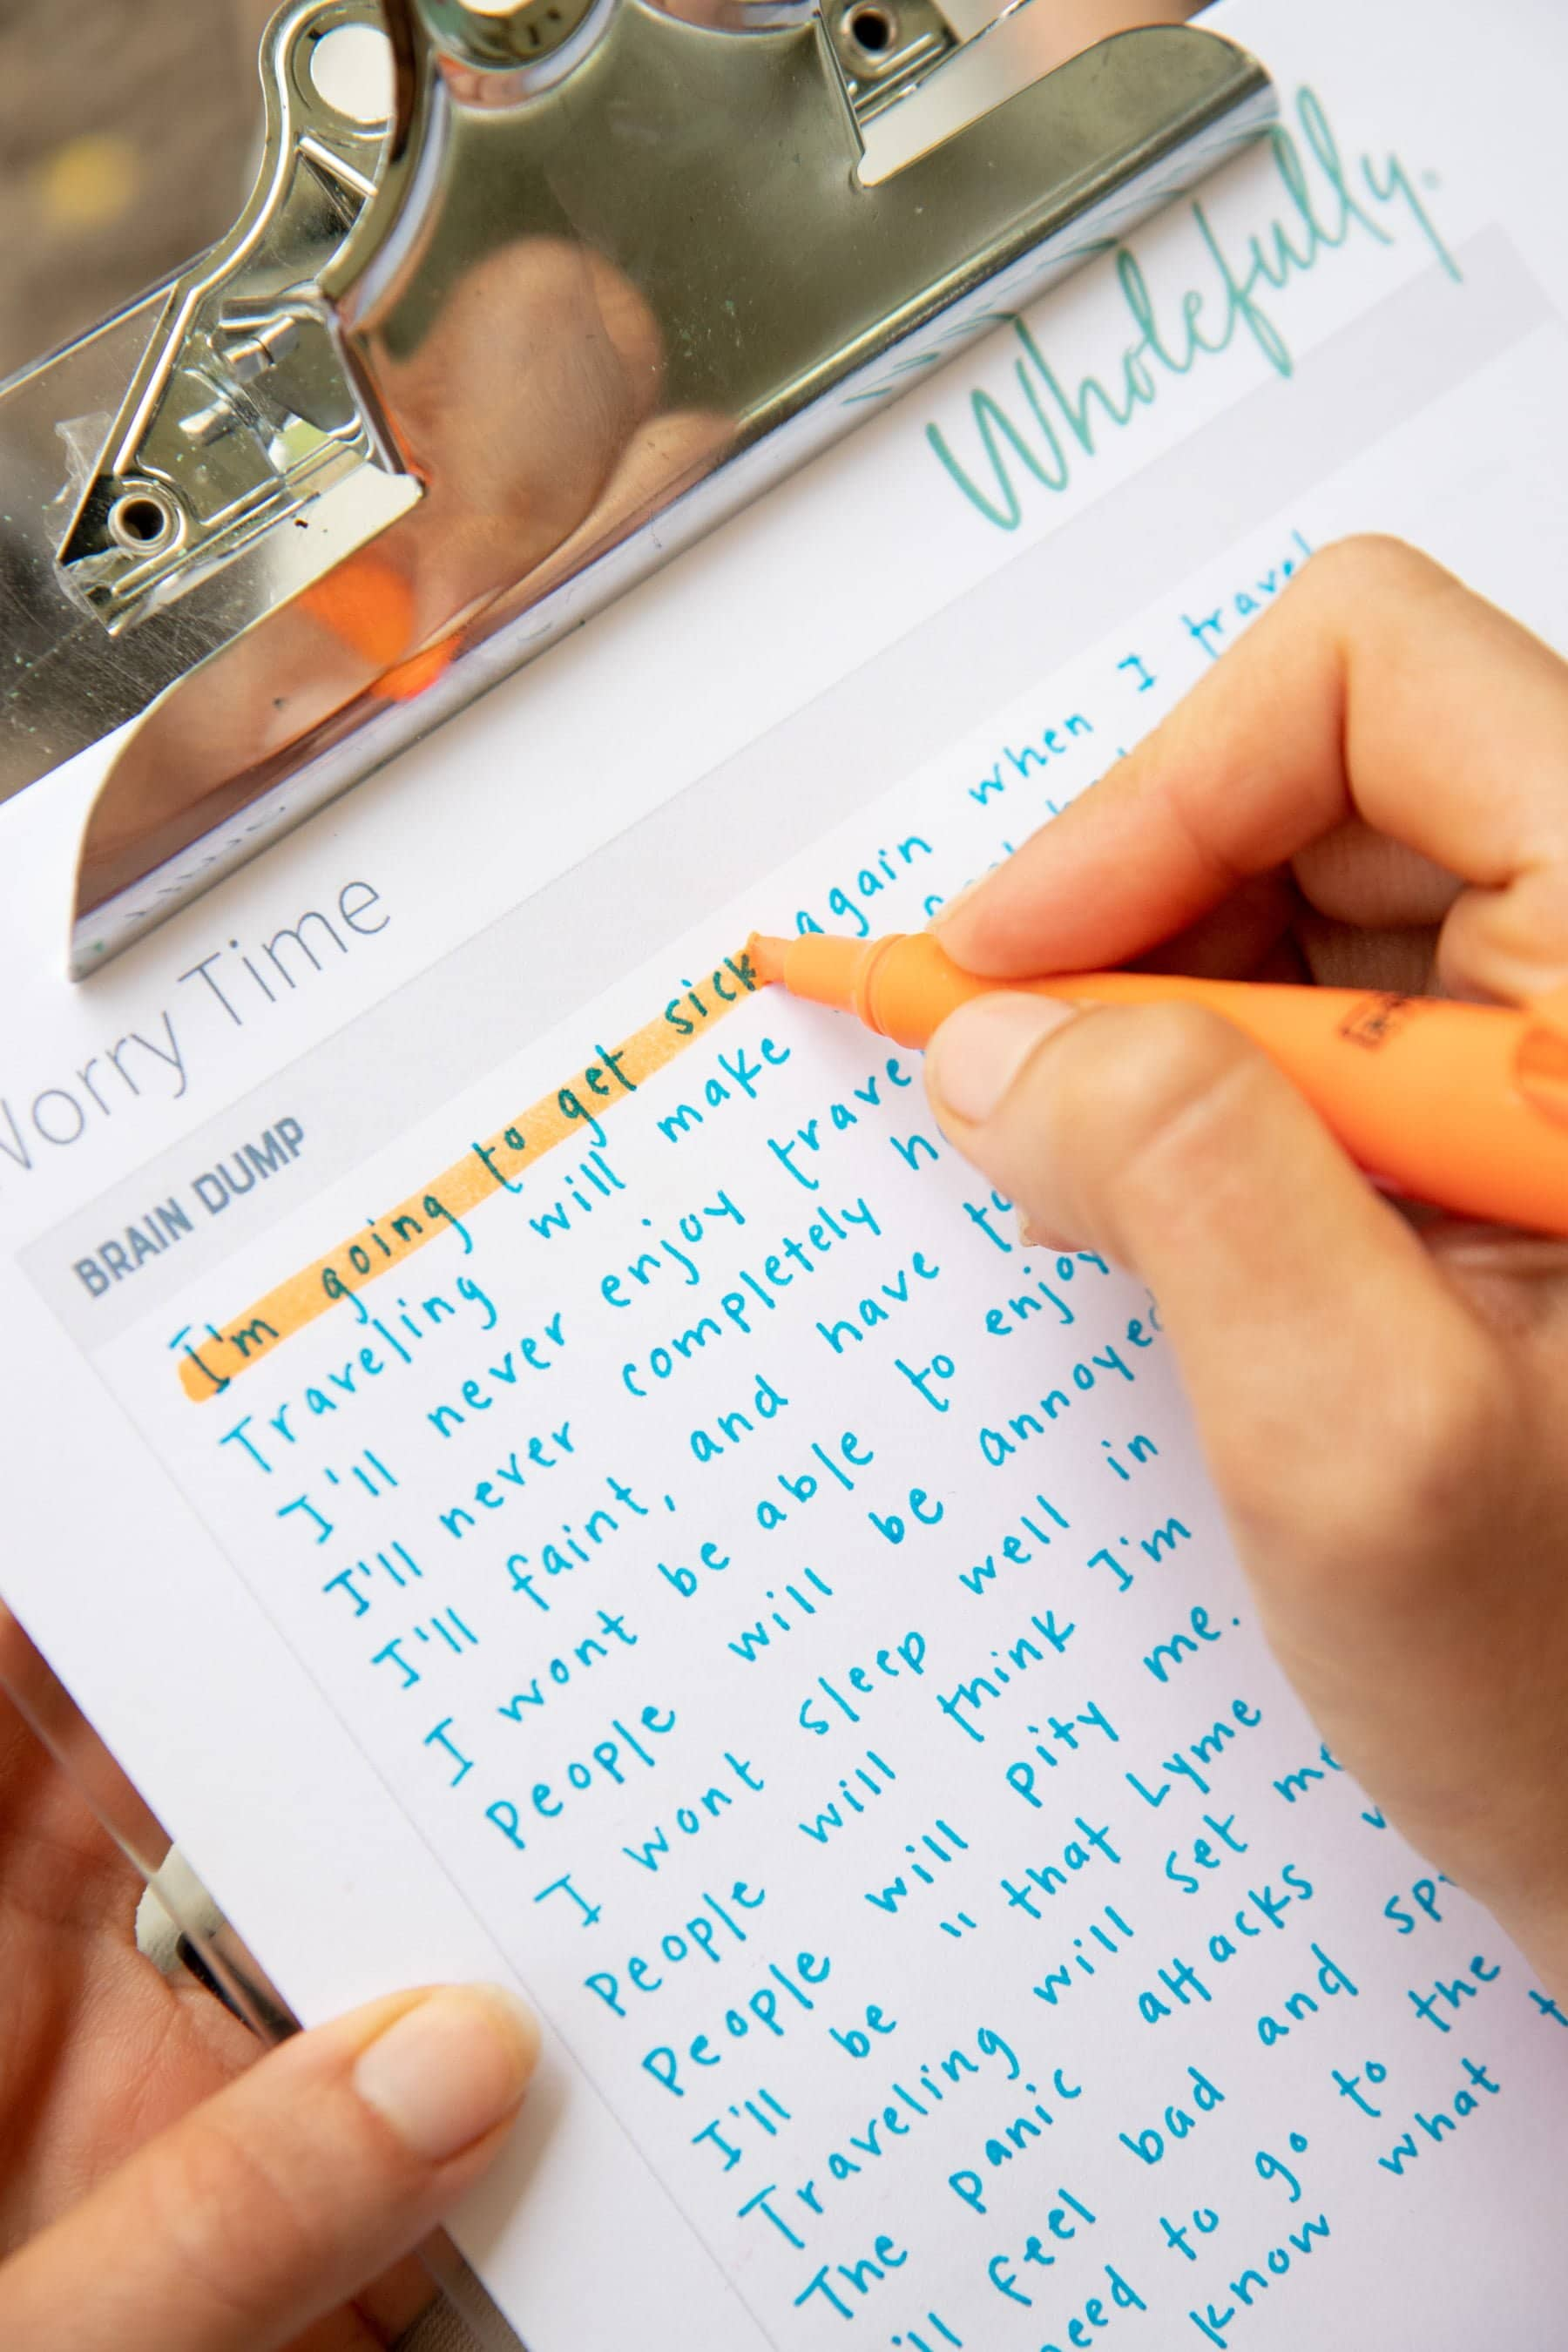 Hands use an orange highlighter to cross off parts of what has been written under the brain dump section of her paper.